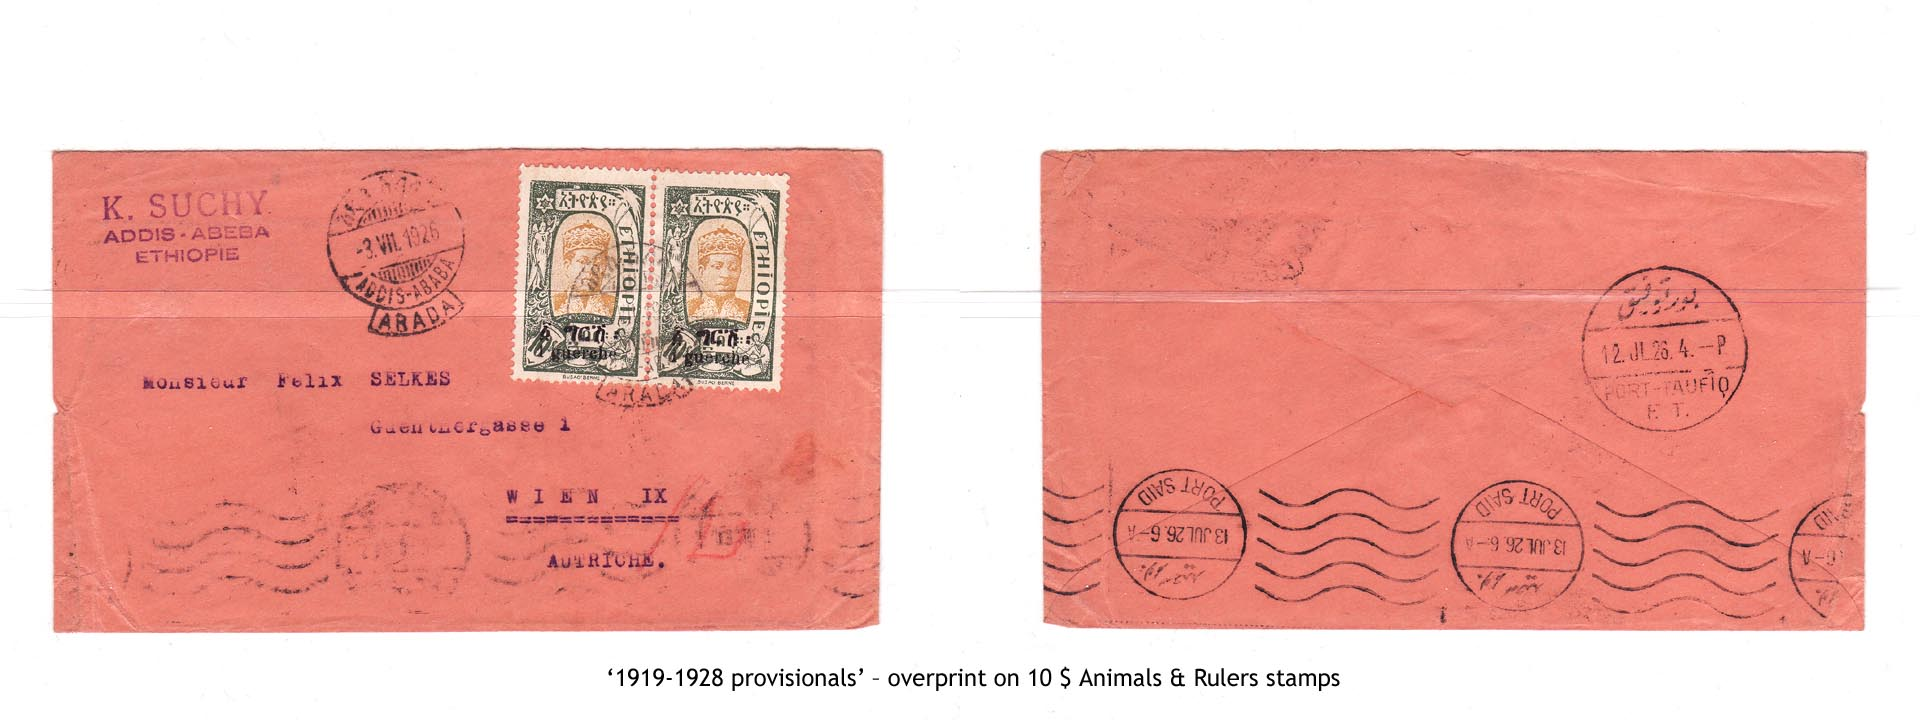 1919-1928 provisionals' – overprint on 10$ Animals & Rulers stamps